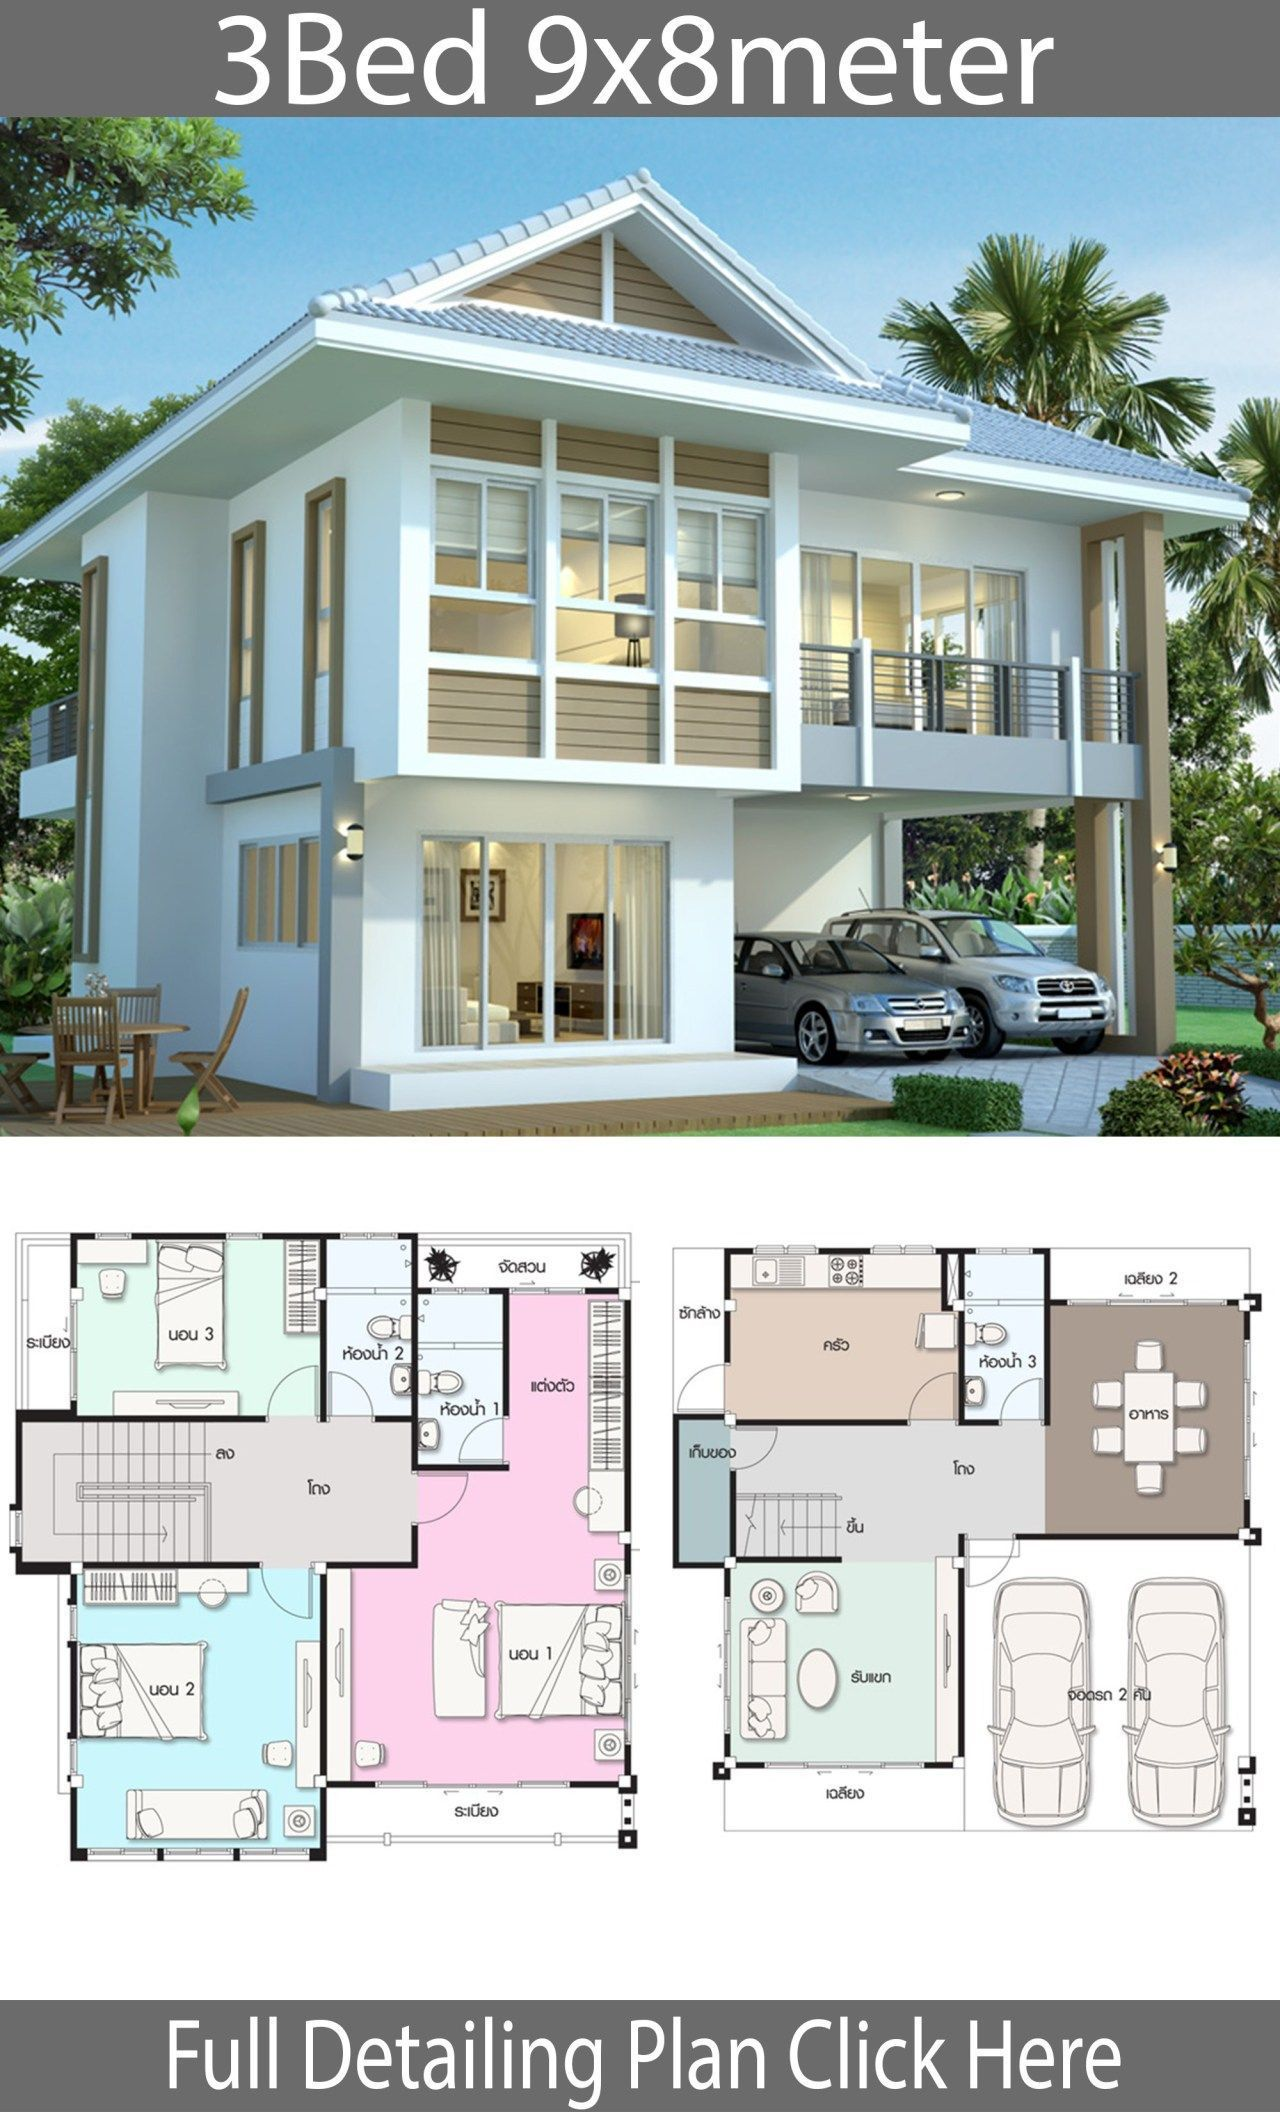 Bedrooms Design House Plan With 9x8 3house Design Plan 9x8 With 3 Bedrooms House Design Plan 9x Sims House Plans 2 Storey House Design House Blueprints